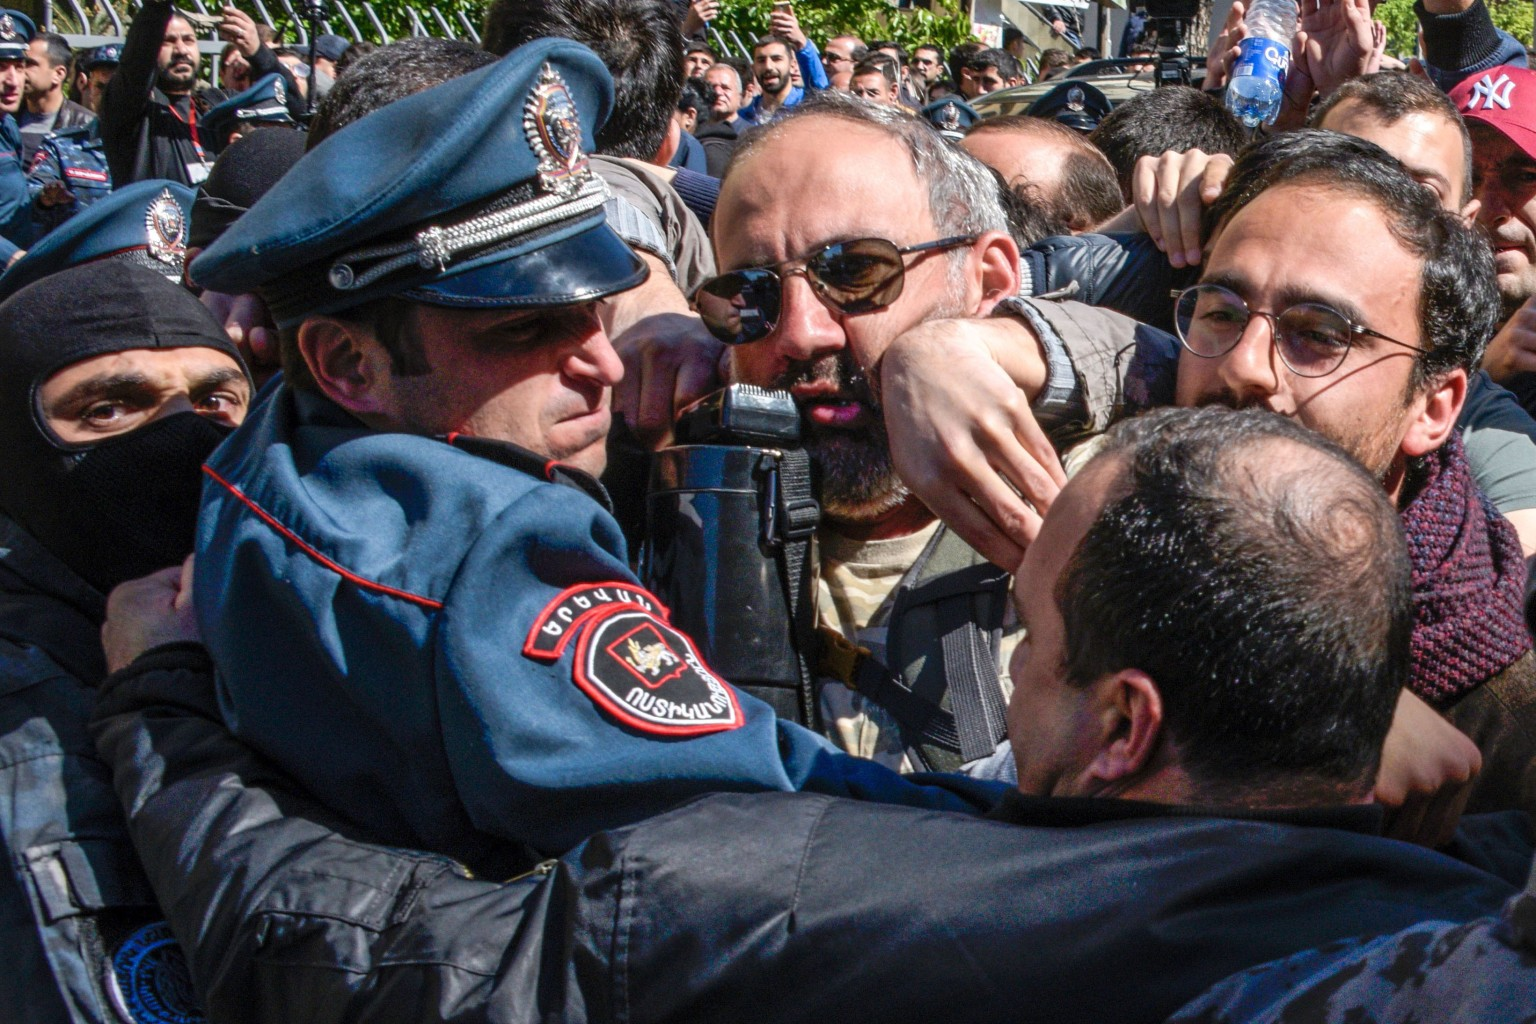 Armenian policemen try to stop opposition supporters during a rally in central Yerevan on April 16. Around 1,000 protesters staged rallies in the Armenian capital against former president Serzh Sarkisian as he moves to maintain a chokehold on power as prime minister of the former Soviet nation. KAREN MINASYAN/AFP/Getty Images